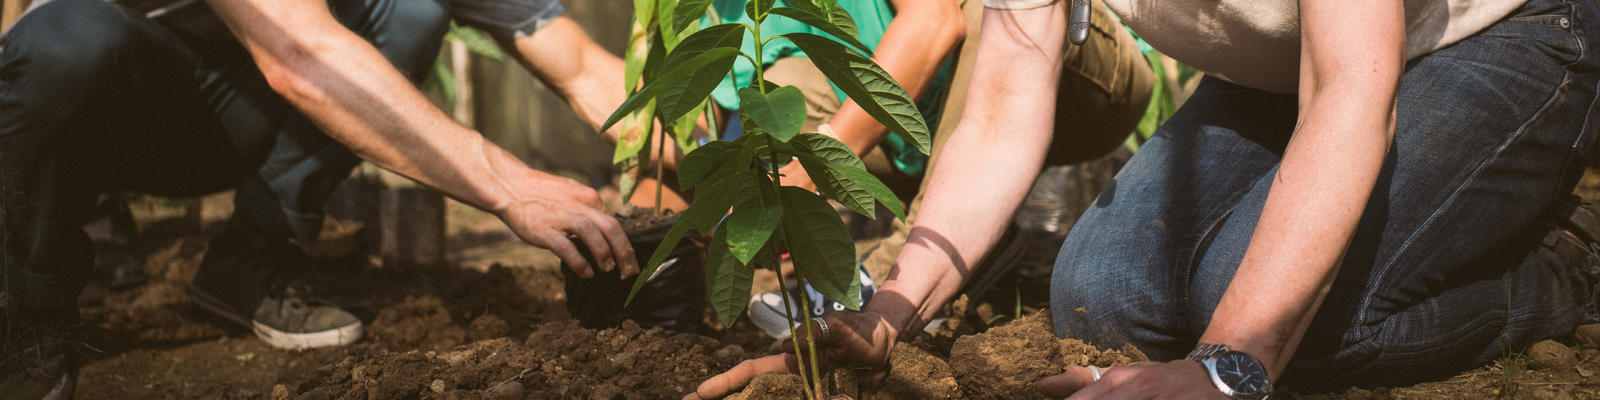 Impact activity at a cacao nursery in the Dominican Republic (Photo: Fathom)